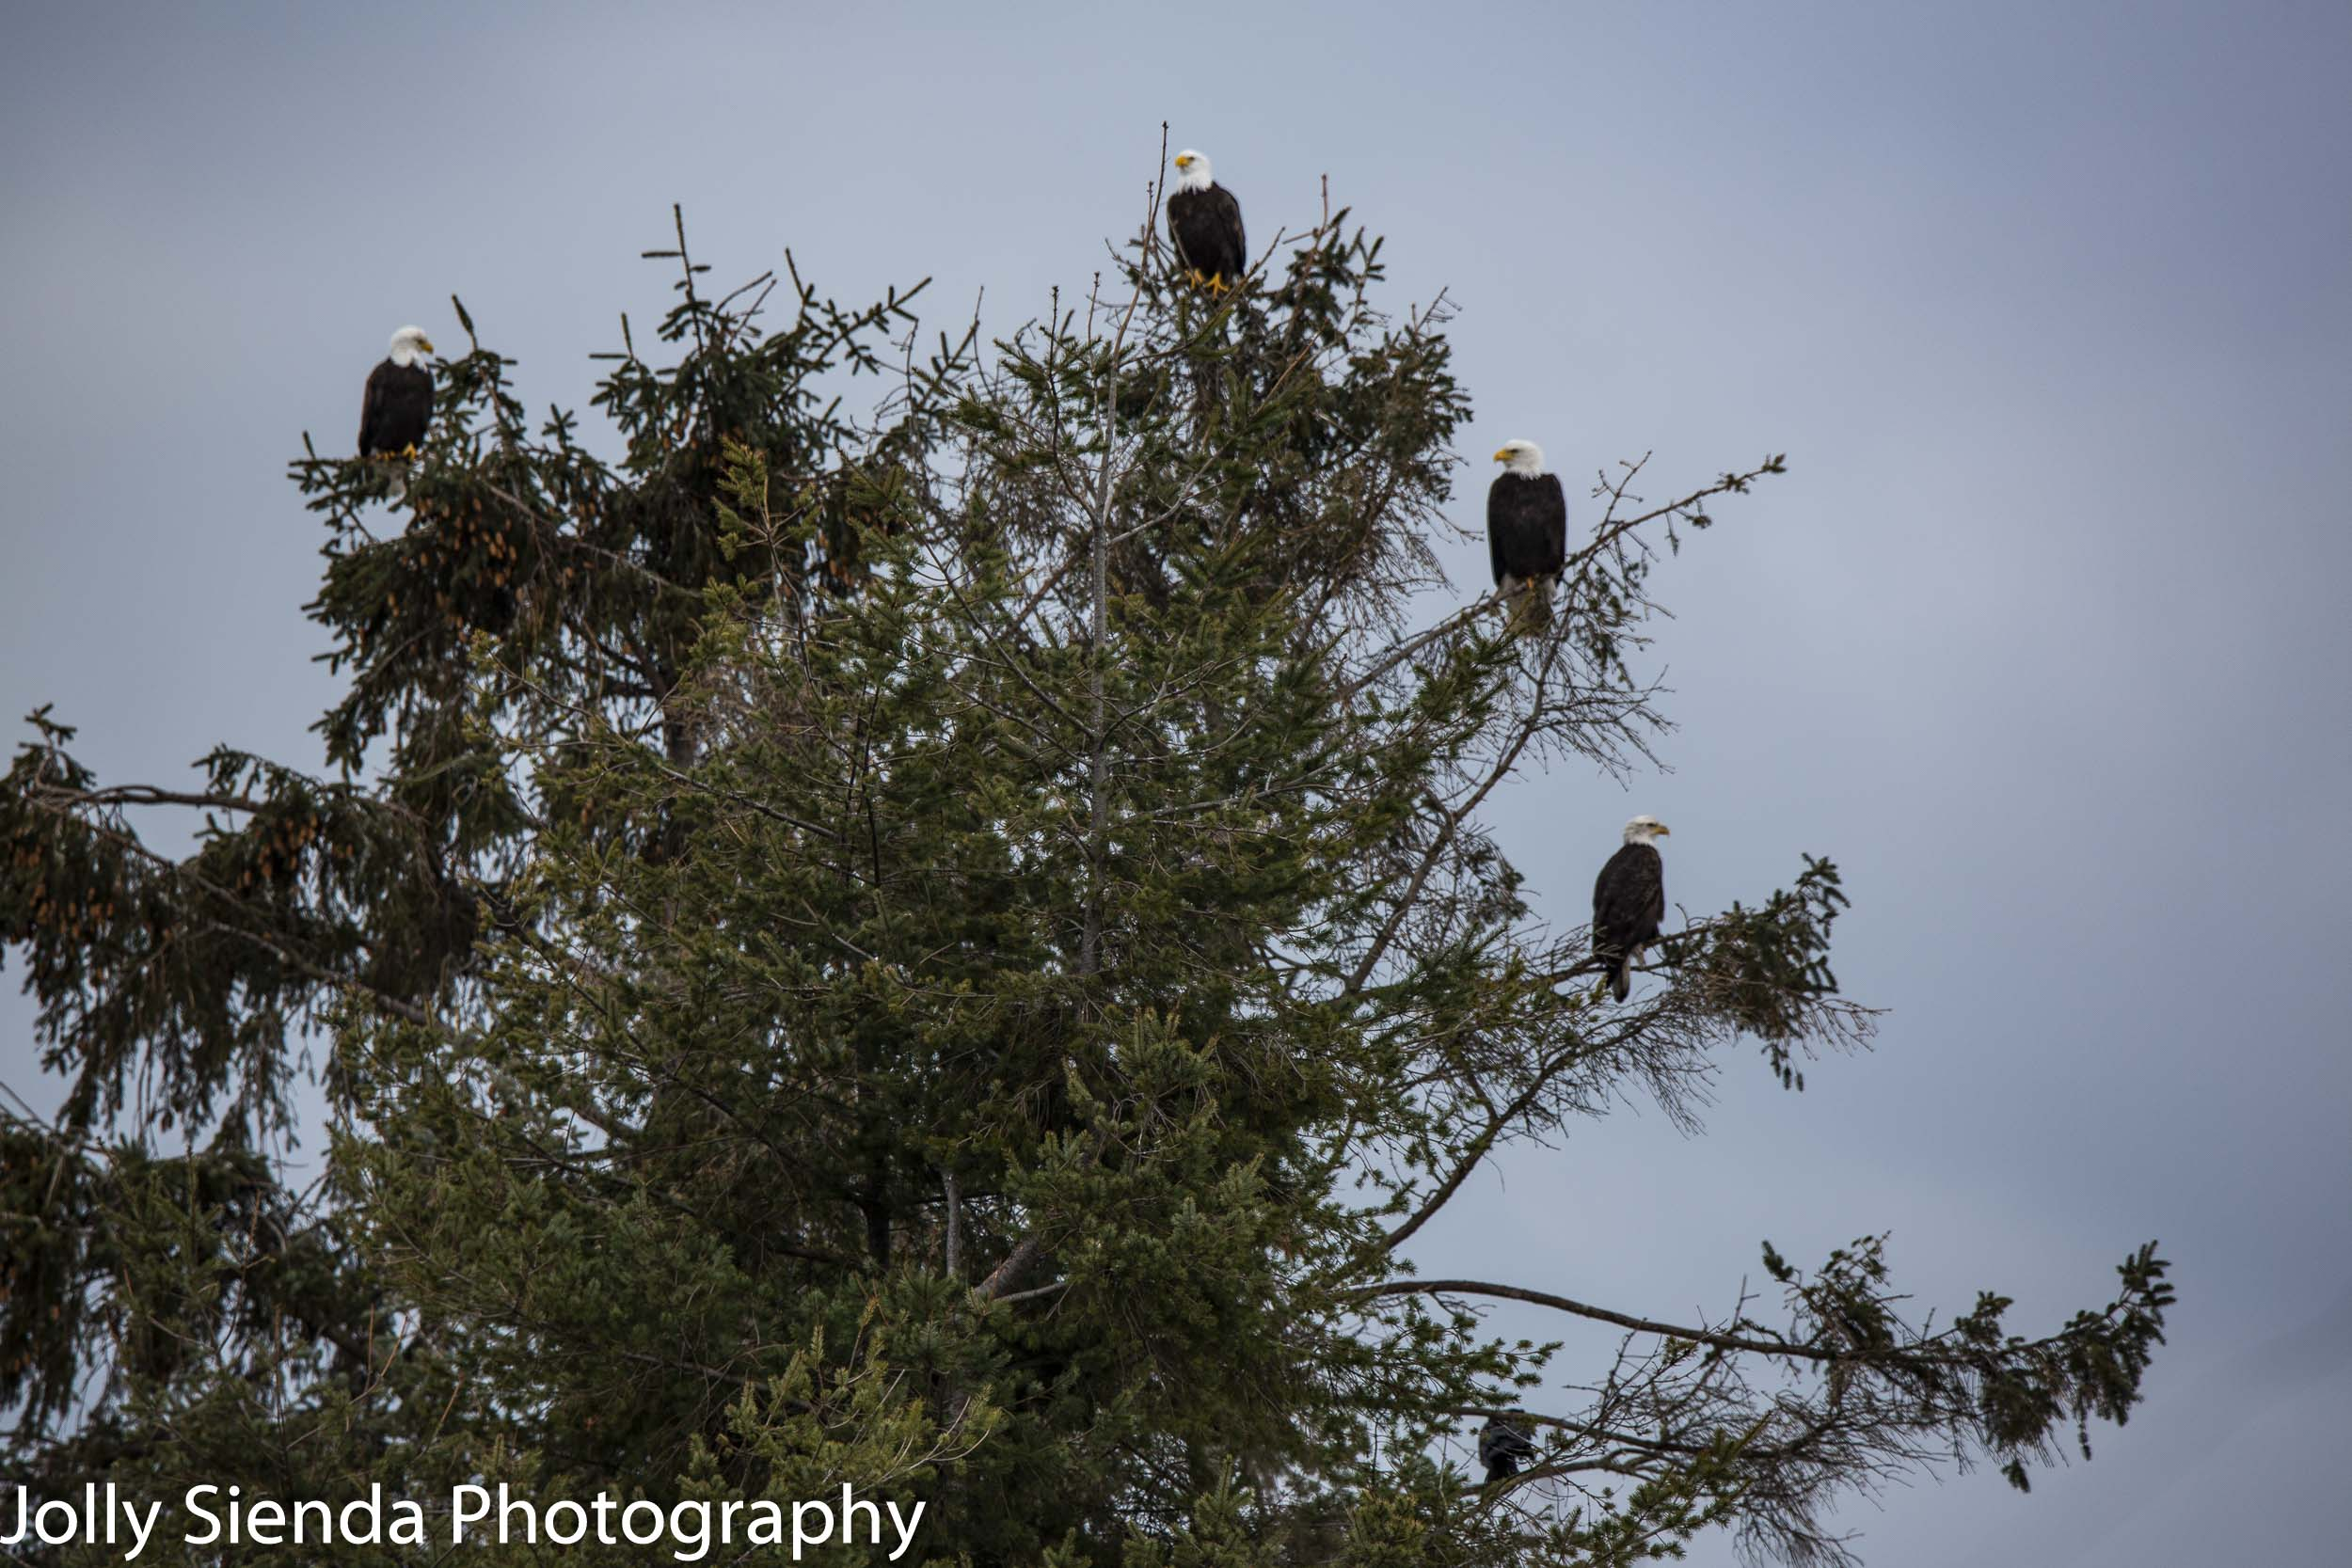 Bald Eagles up in a tree, Skagit Valley, Washington